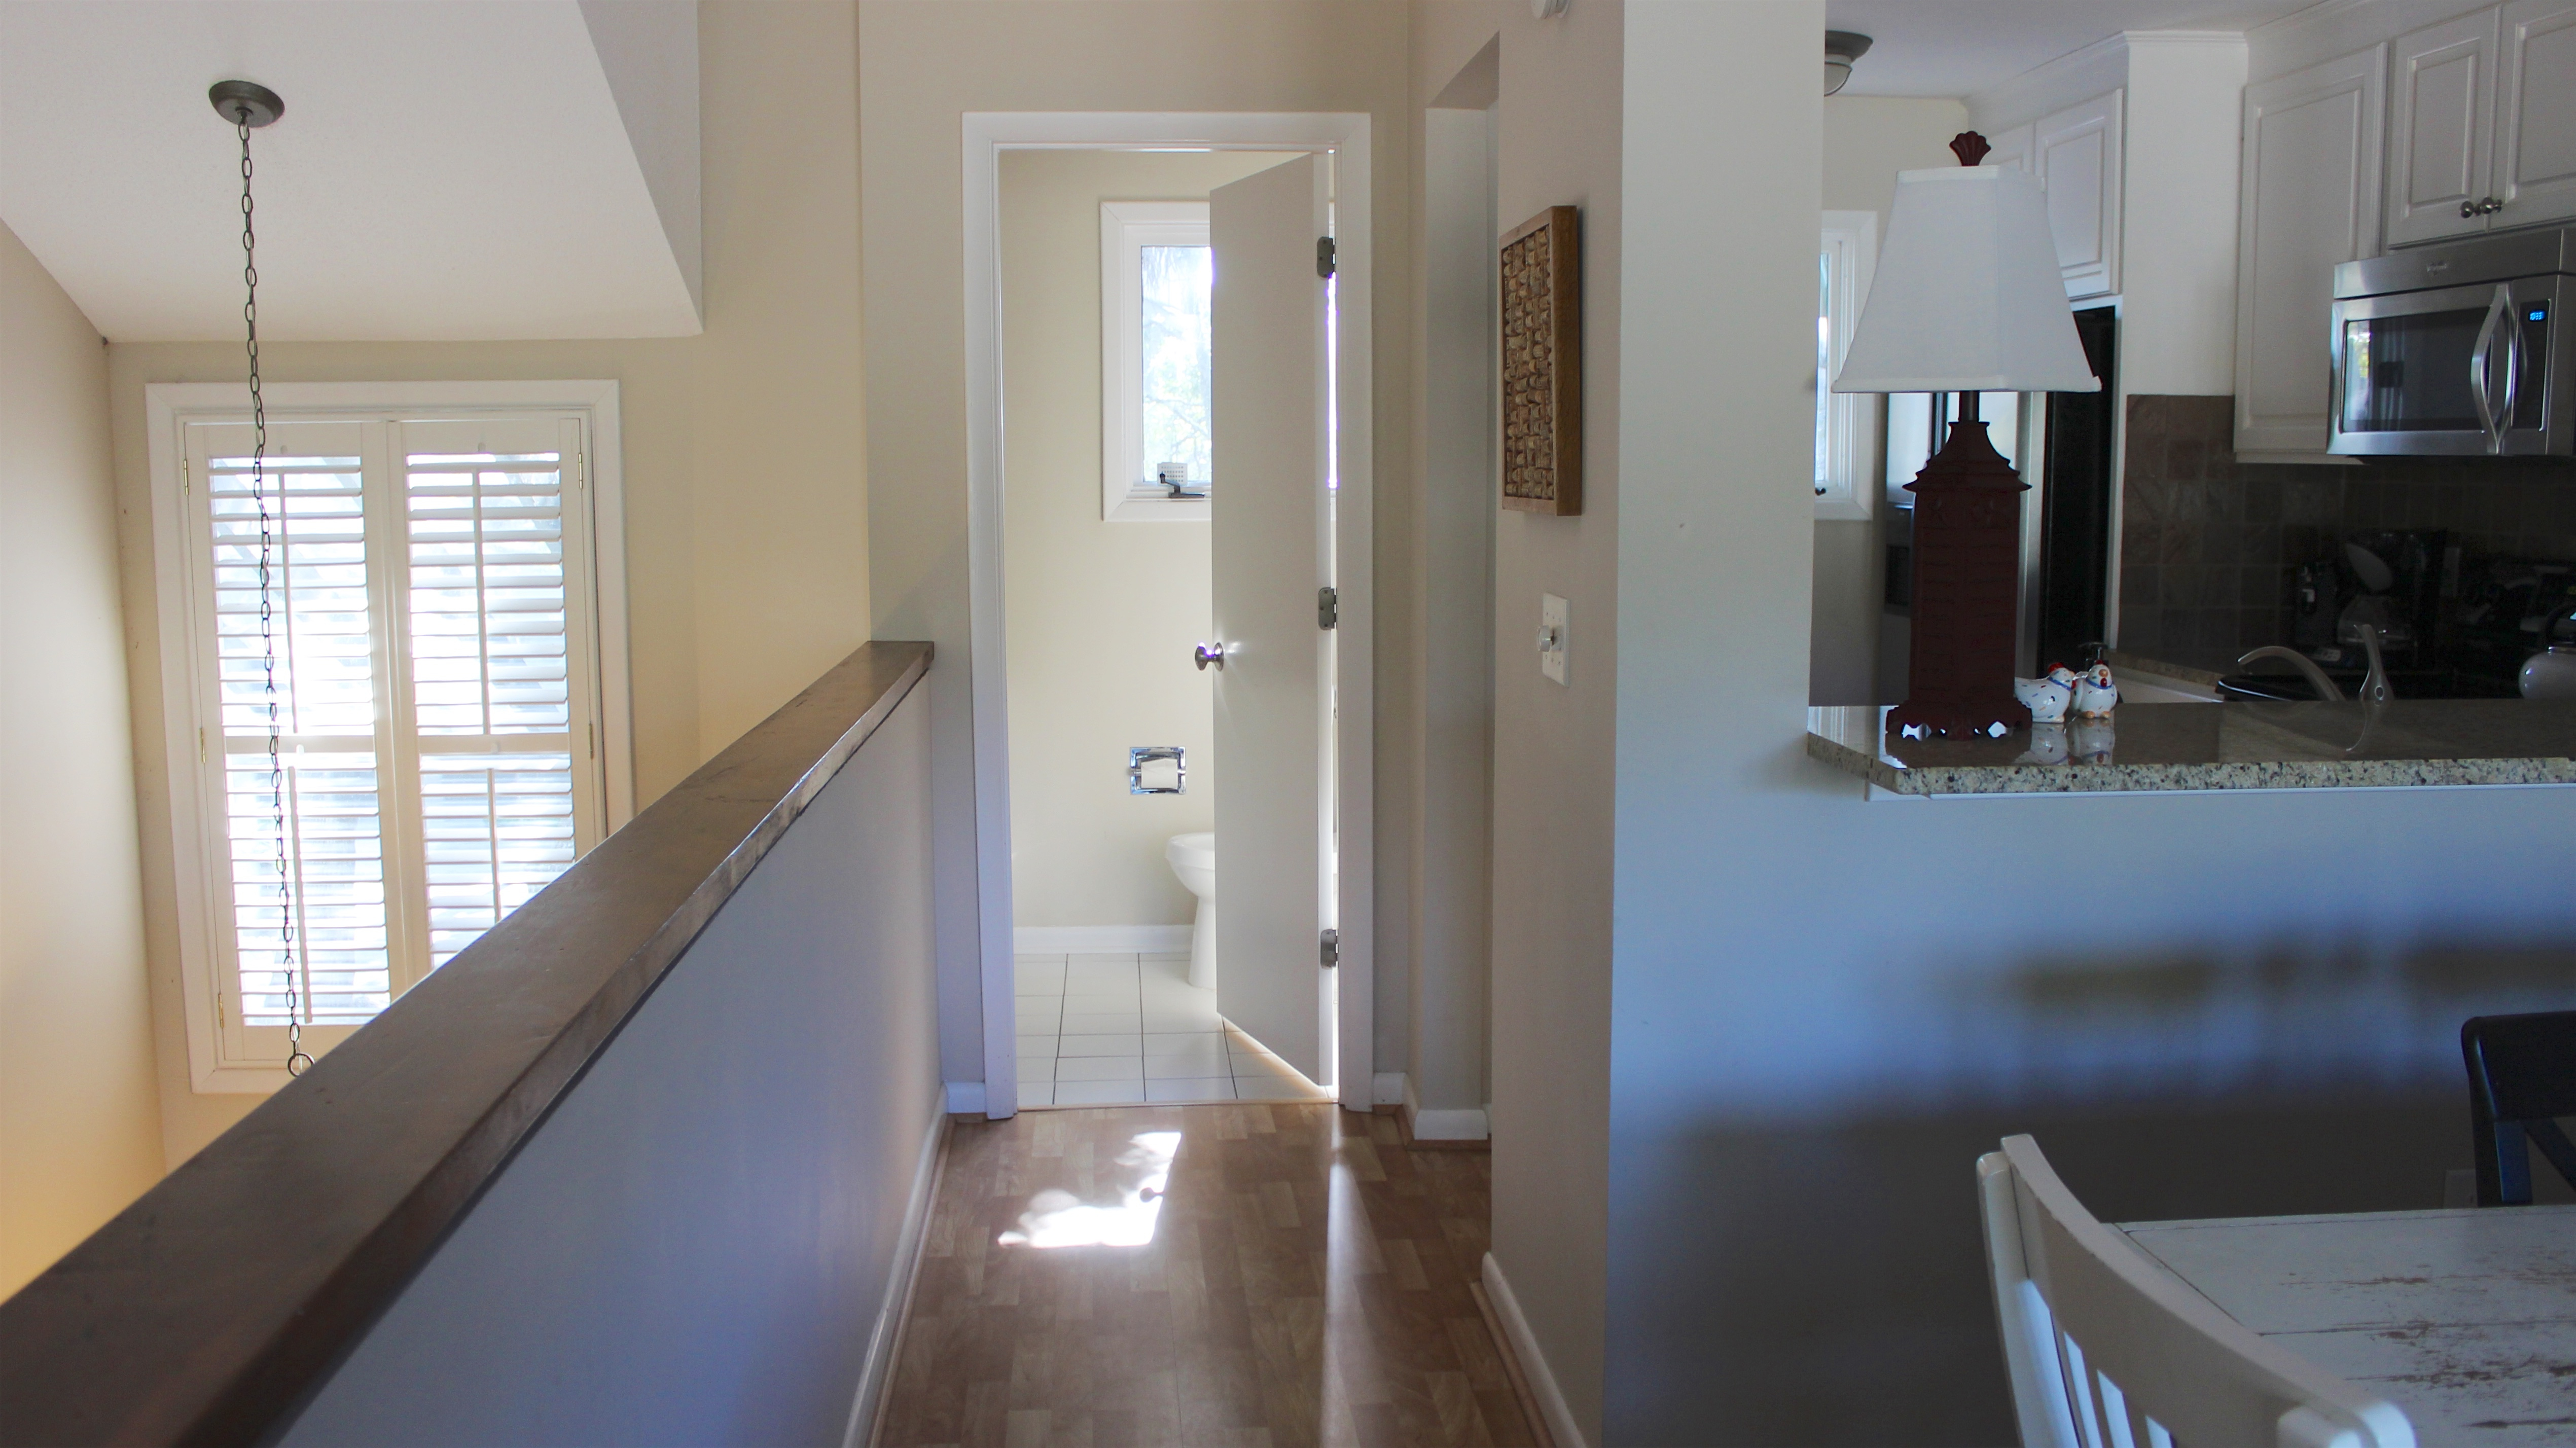 Next to the kitchen is a powder room.